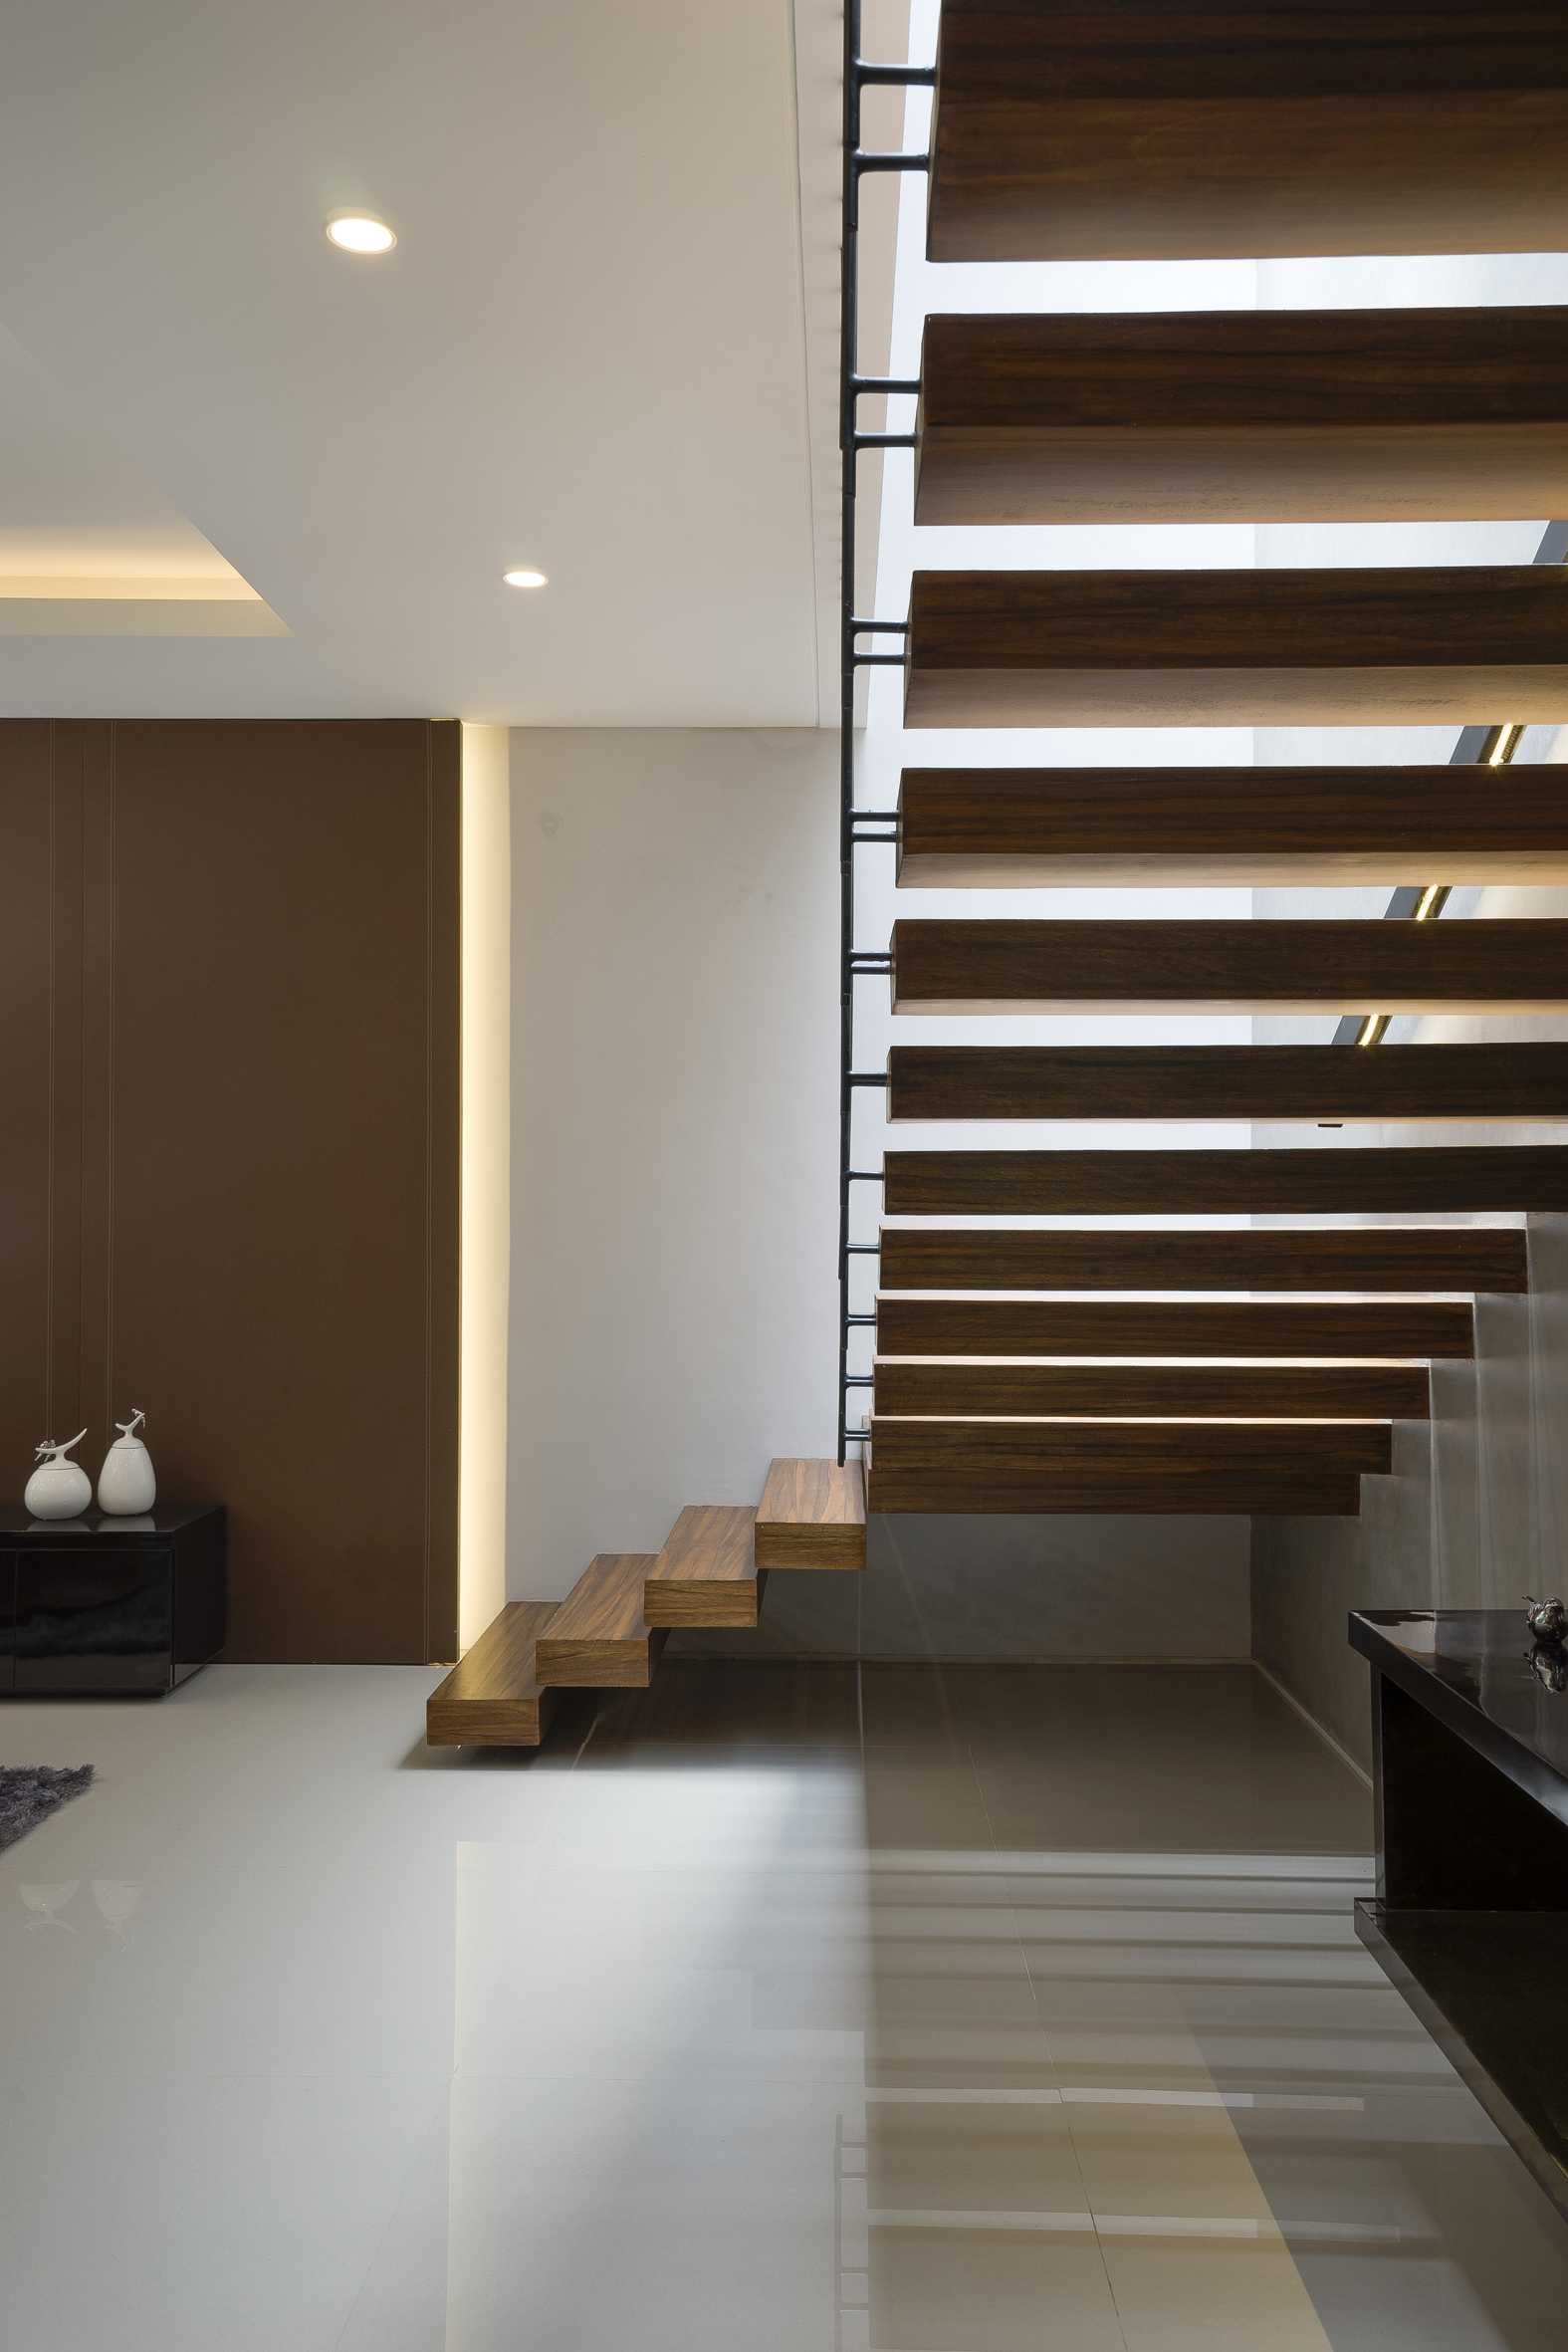 "Simple Projects Architecture ""s"" House Pakuwon Indah, Surabaya - Indonesia Pakuwon Indah, Surabaya - Indonesia Staircase   32989"